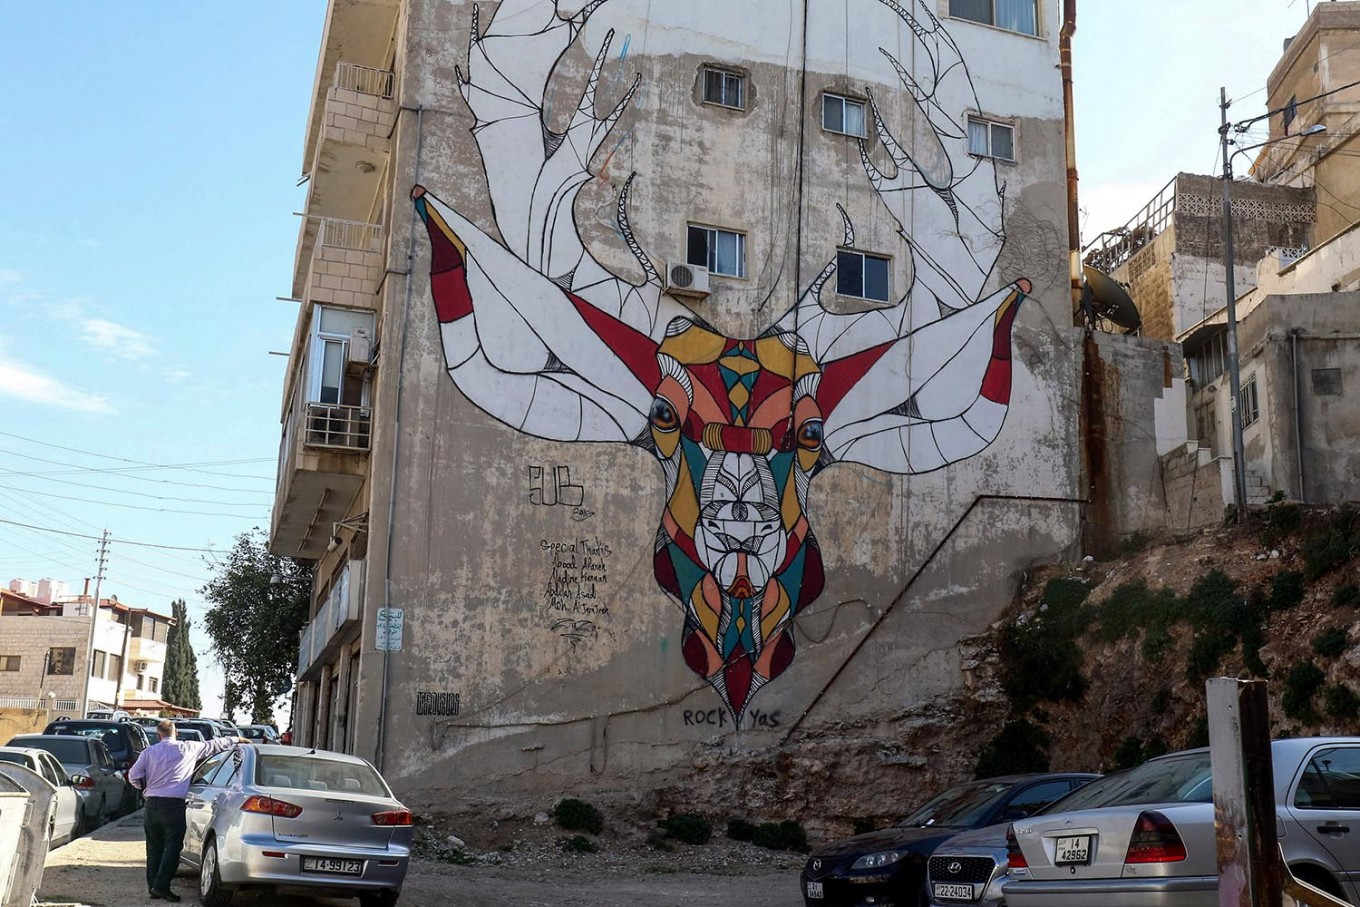 A picture taken on December 17, 2017 shows a graffiti mural on a wall in the Jordanian capital Amman. A tiny group of graffiti artists are on a mission -- daubing flowers, faces and patterns across the capital Amman to bring more colour to the lives of its four million inhabitants.